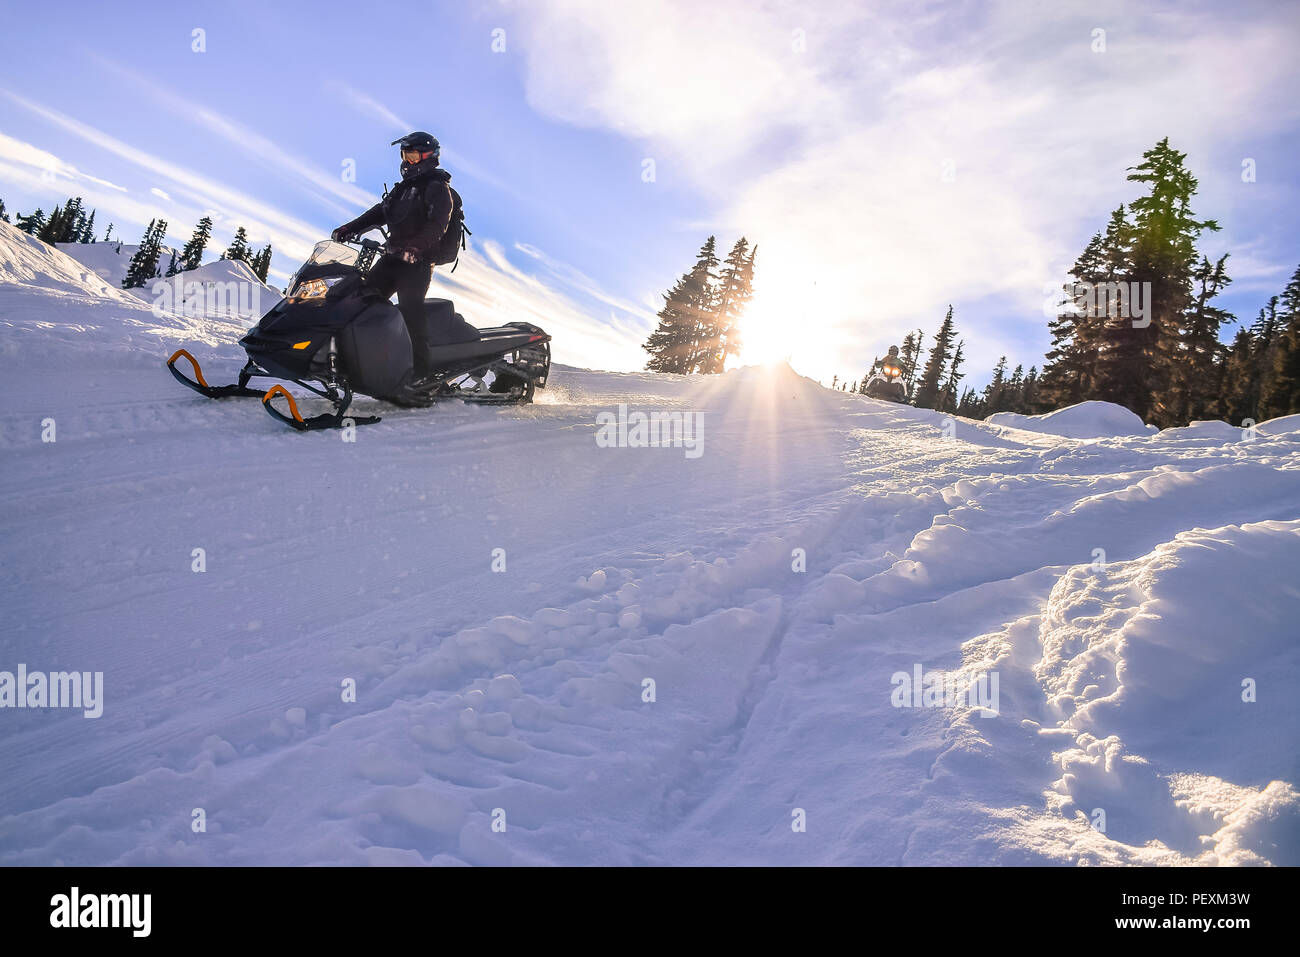 Man riding snowmobile in Callaghan Valley, Whistler, British Columbia, Canada - Stock Image